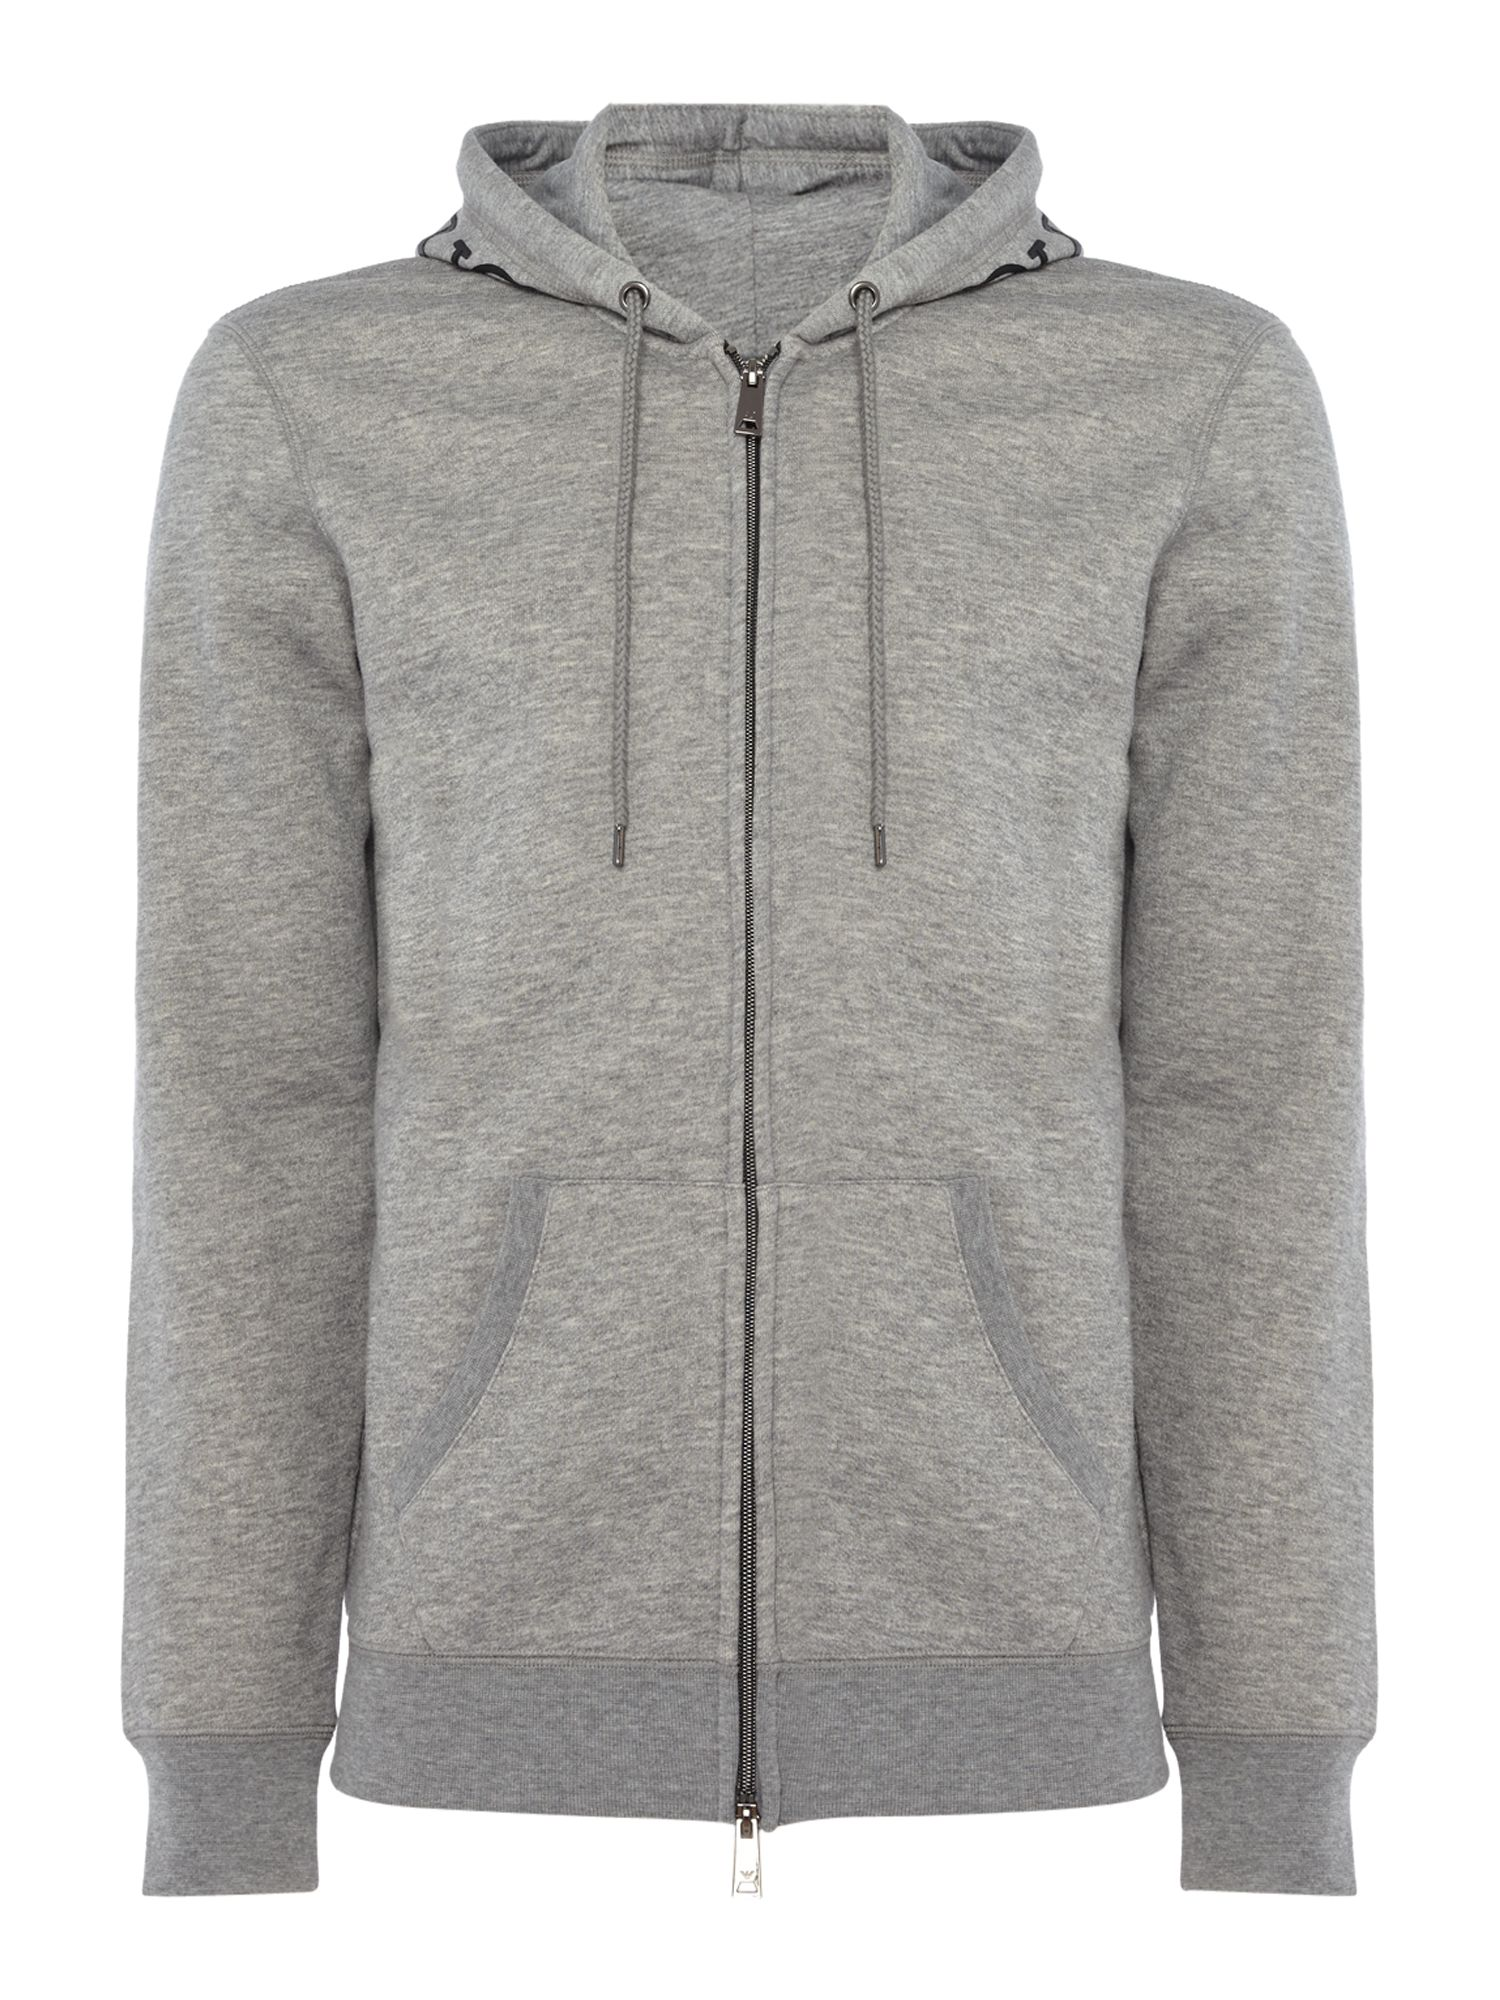 Men's Armani Jeans Back Eagle Print Zip-Through Hooded Sweat, Grey